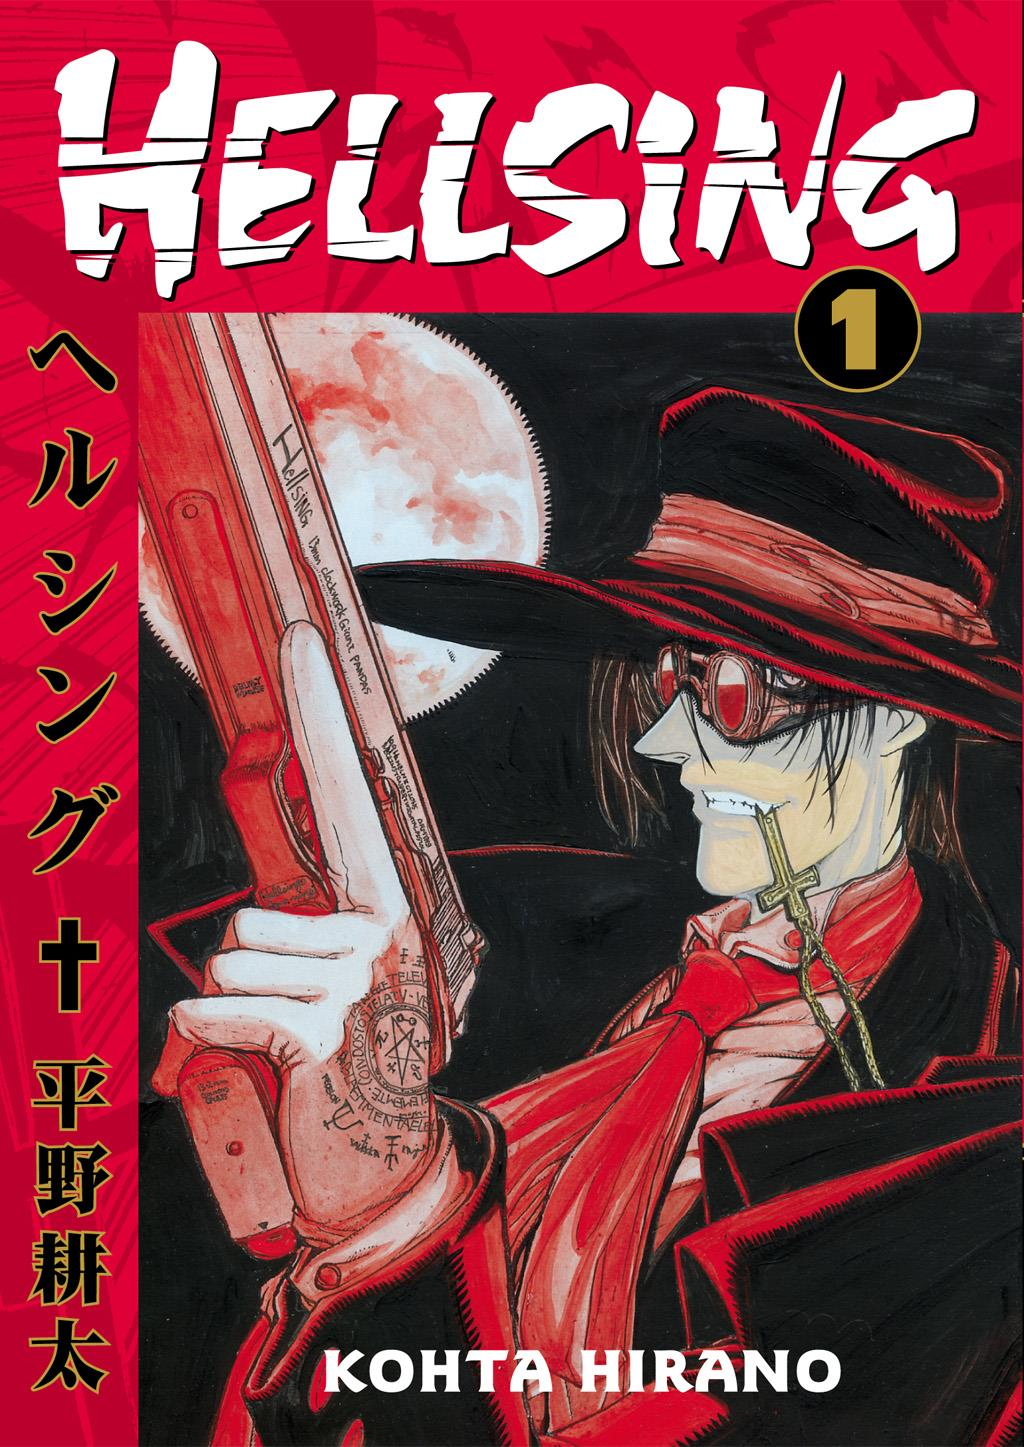 Hellsing Manga Volume 1 Cover